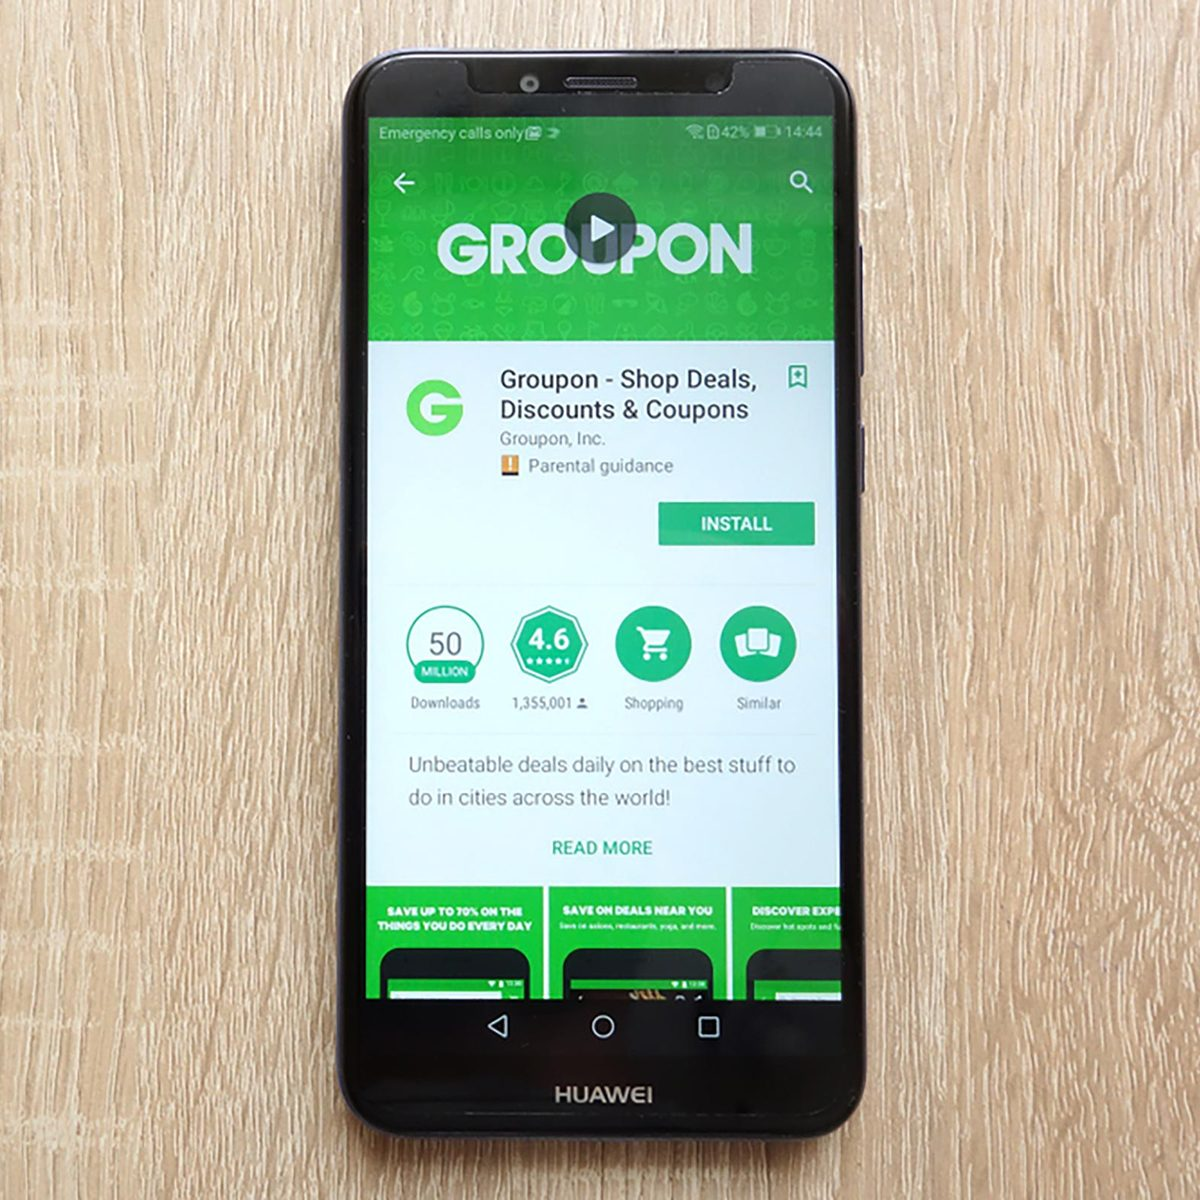 Groupon - Shop Deals, Discounts and Coupons app on Google Play Store website displayed on Huawei Y6 2018 smartphone